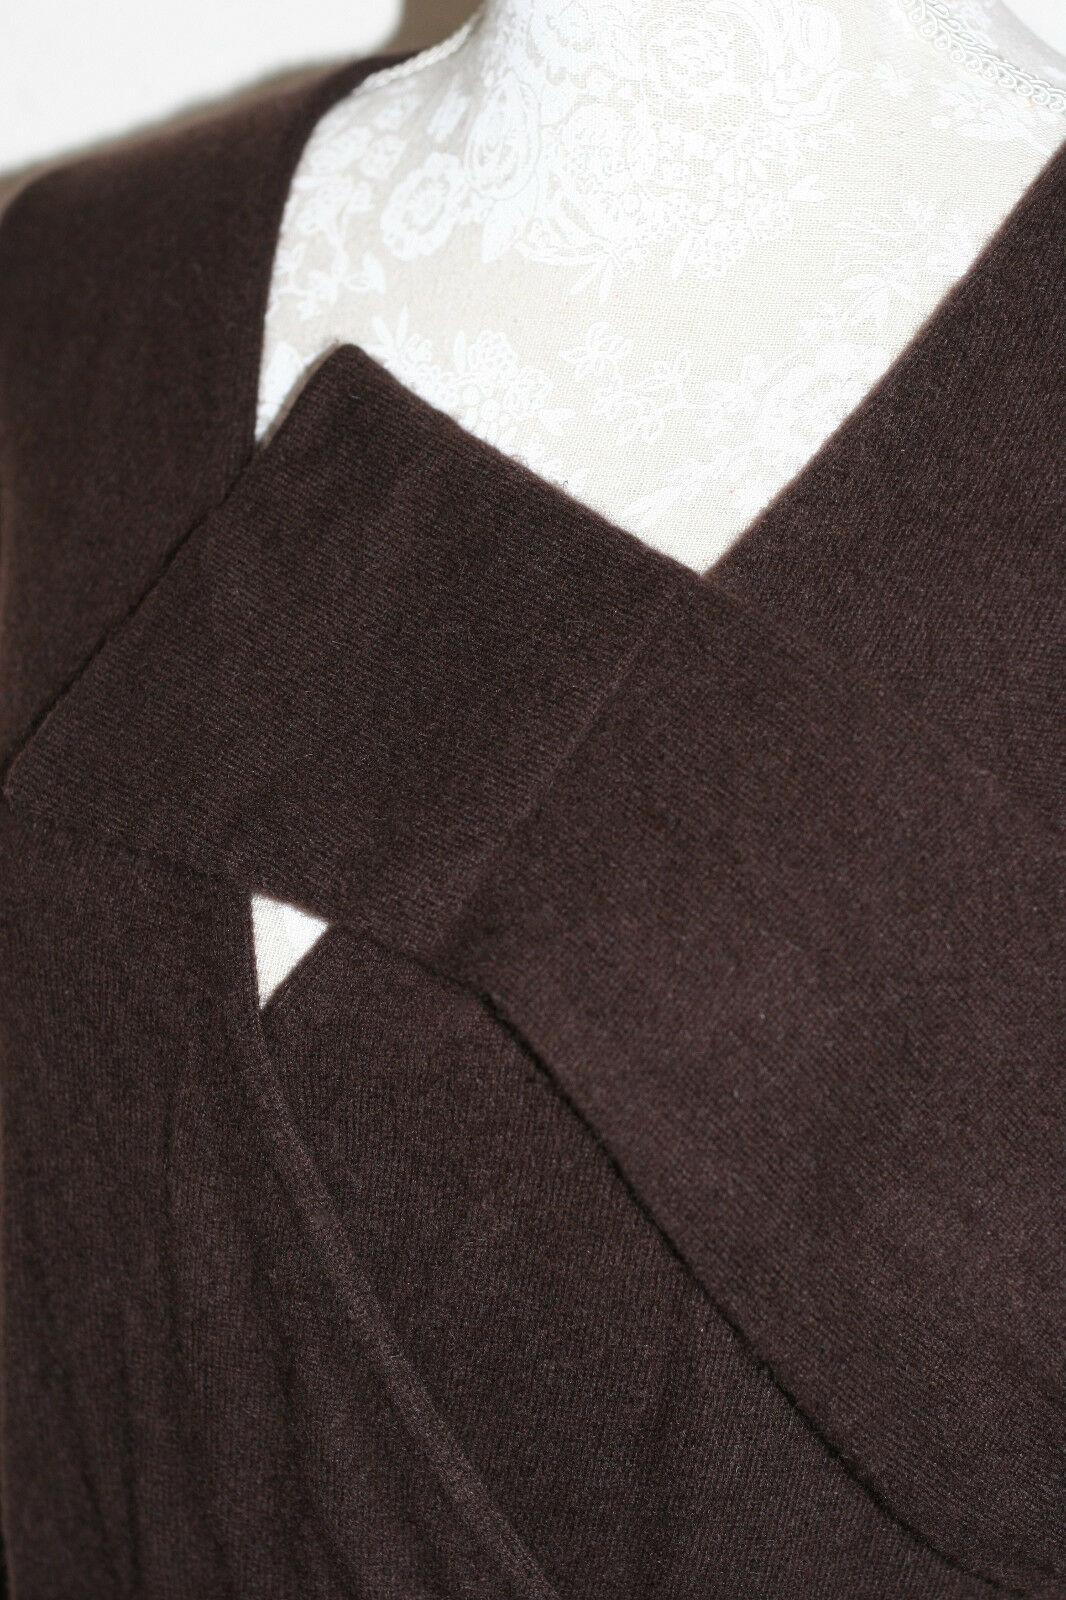 100% Cashmere L 12 14 14 14 Suave Grueso Suave Pure Collection puente de chocolate amargo 7986ee